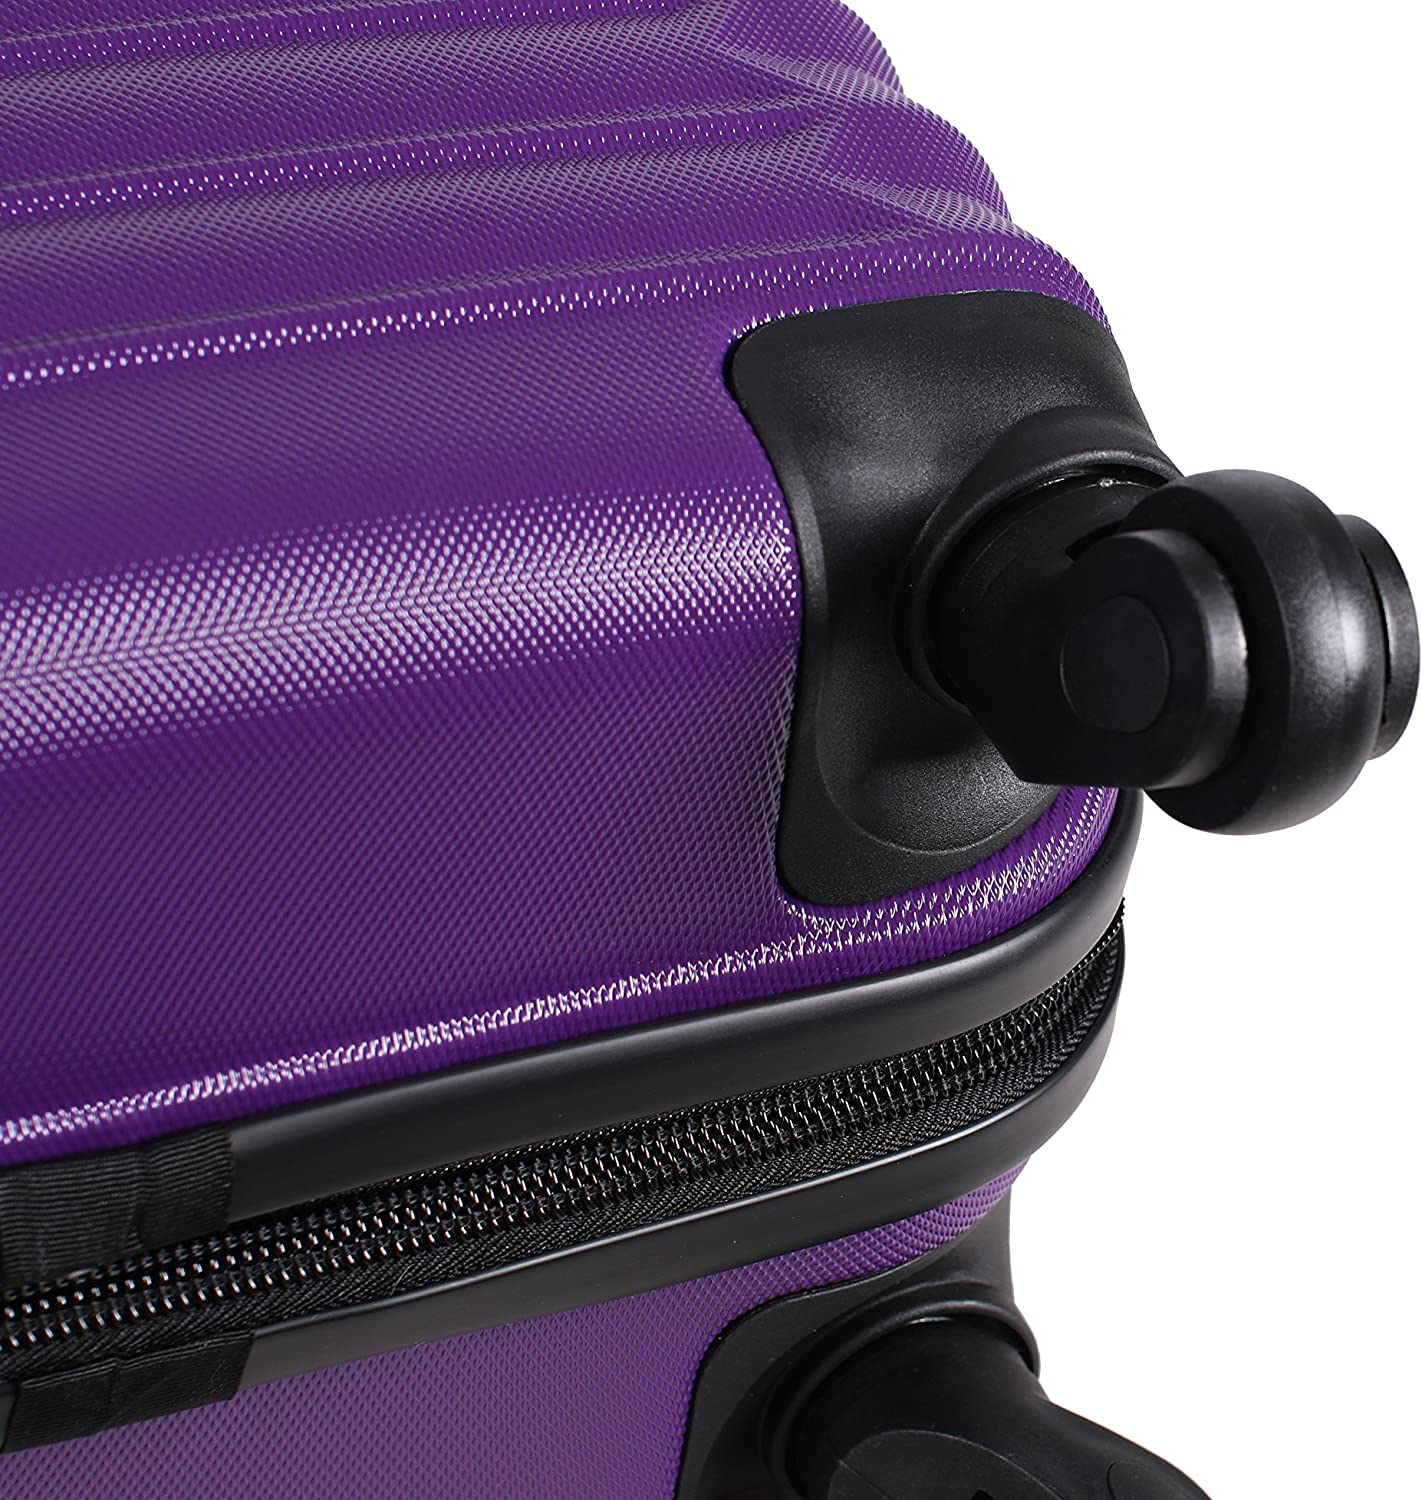 Ultra Lightweight Expandable Large Suitcase With Rolling 4-Spinner Wheels 24 Inch Scratch Resistant Hard Case Bag Lucas Treadlight Checked Luggage Collection Purple ABS + PC